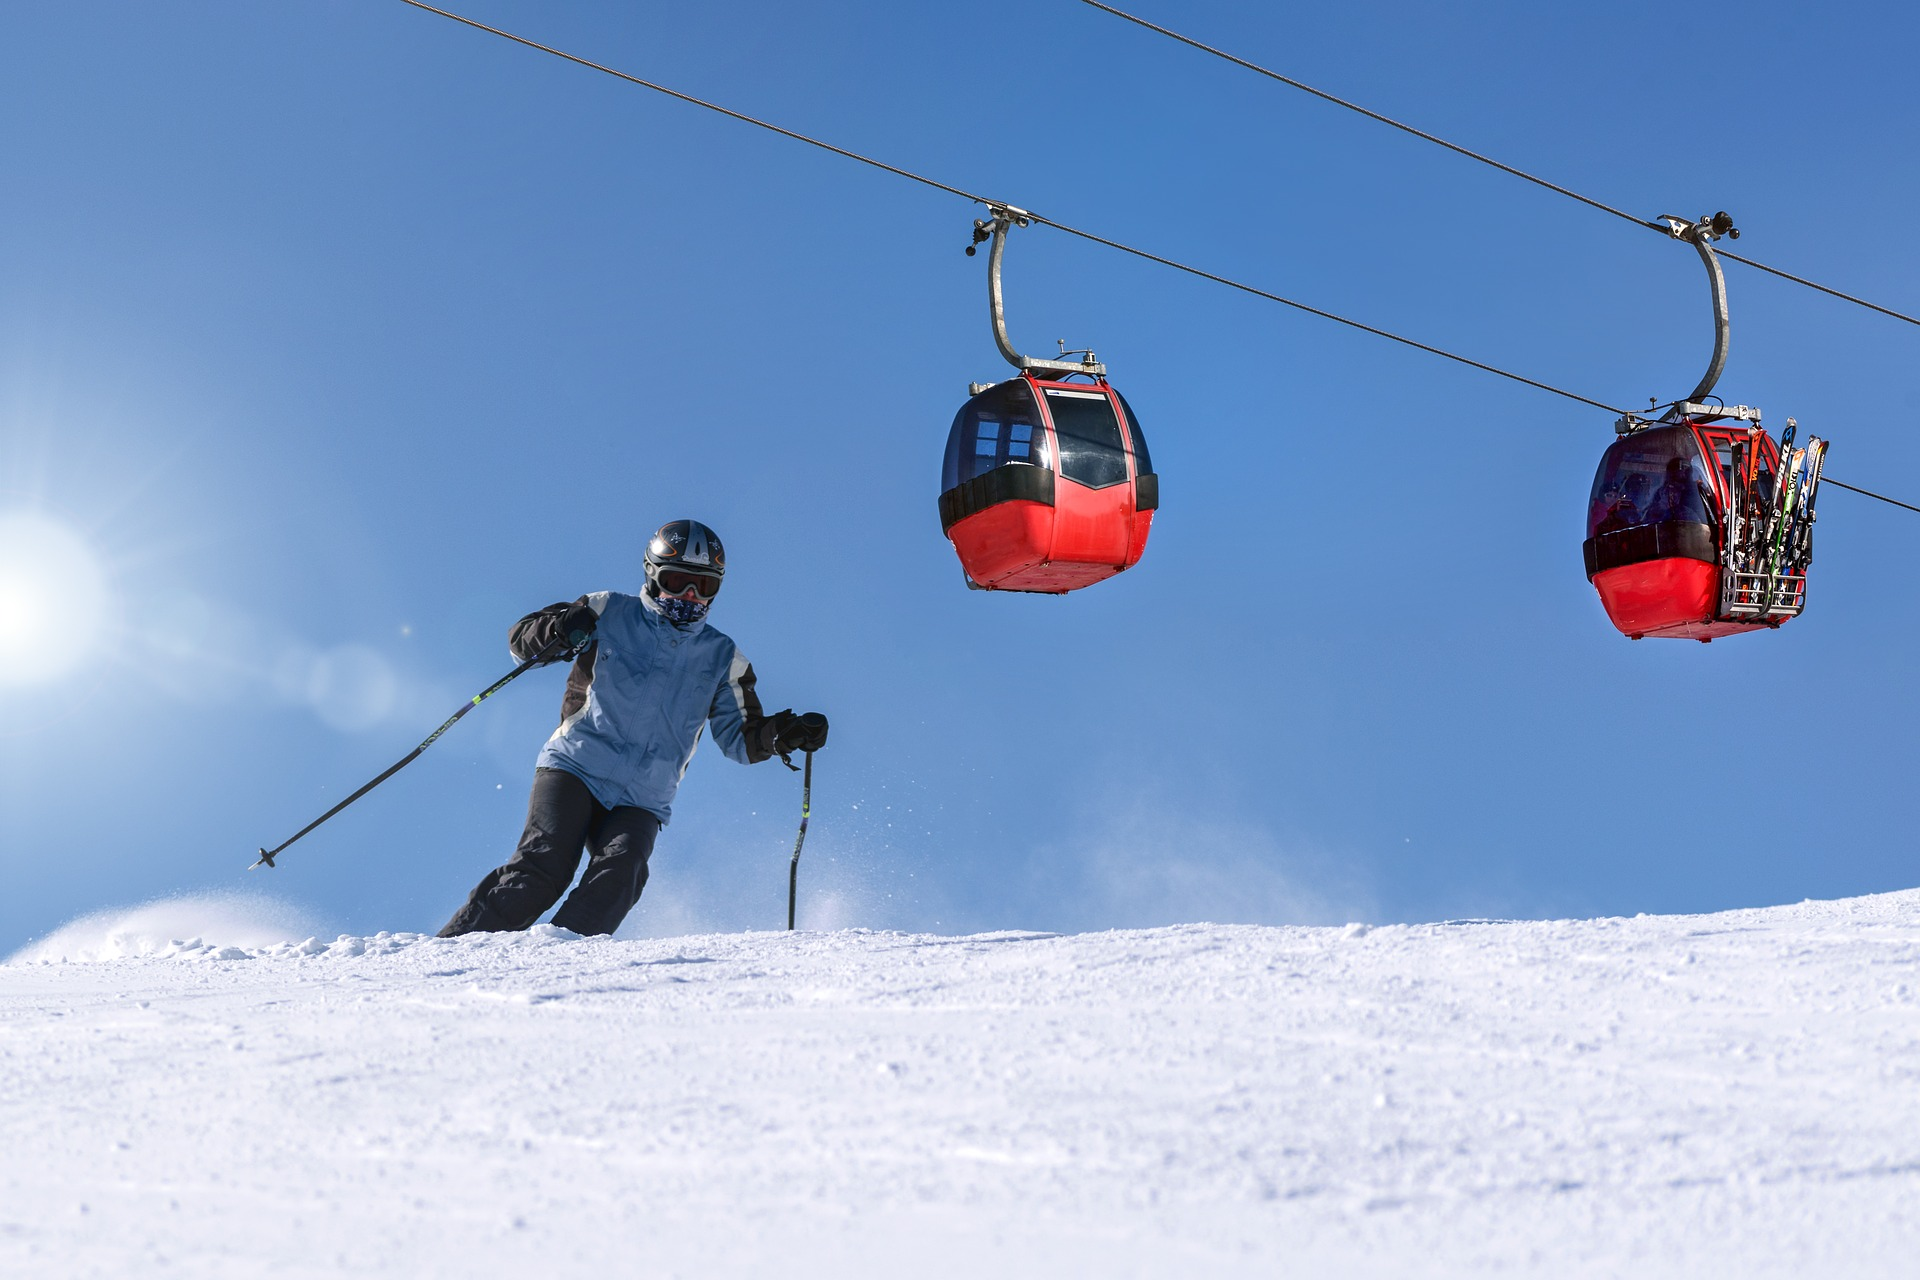 For skiers